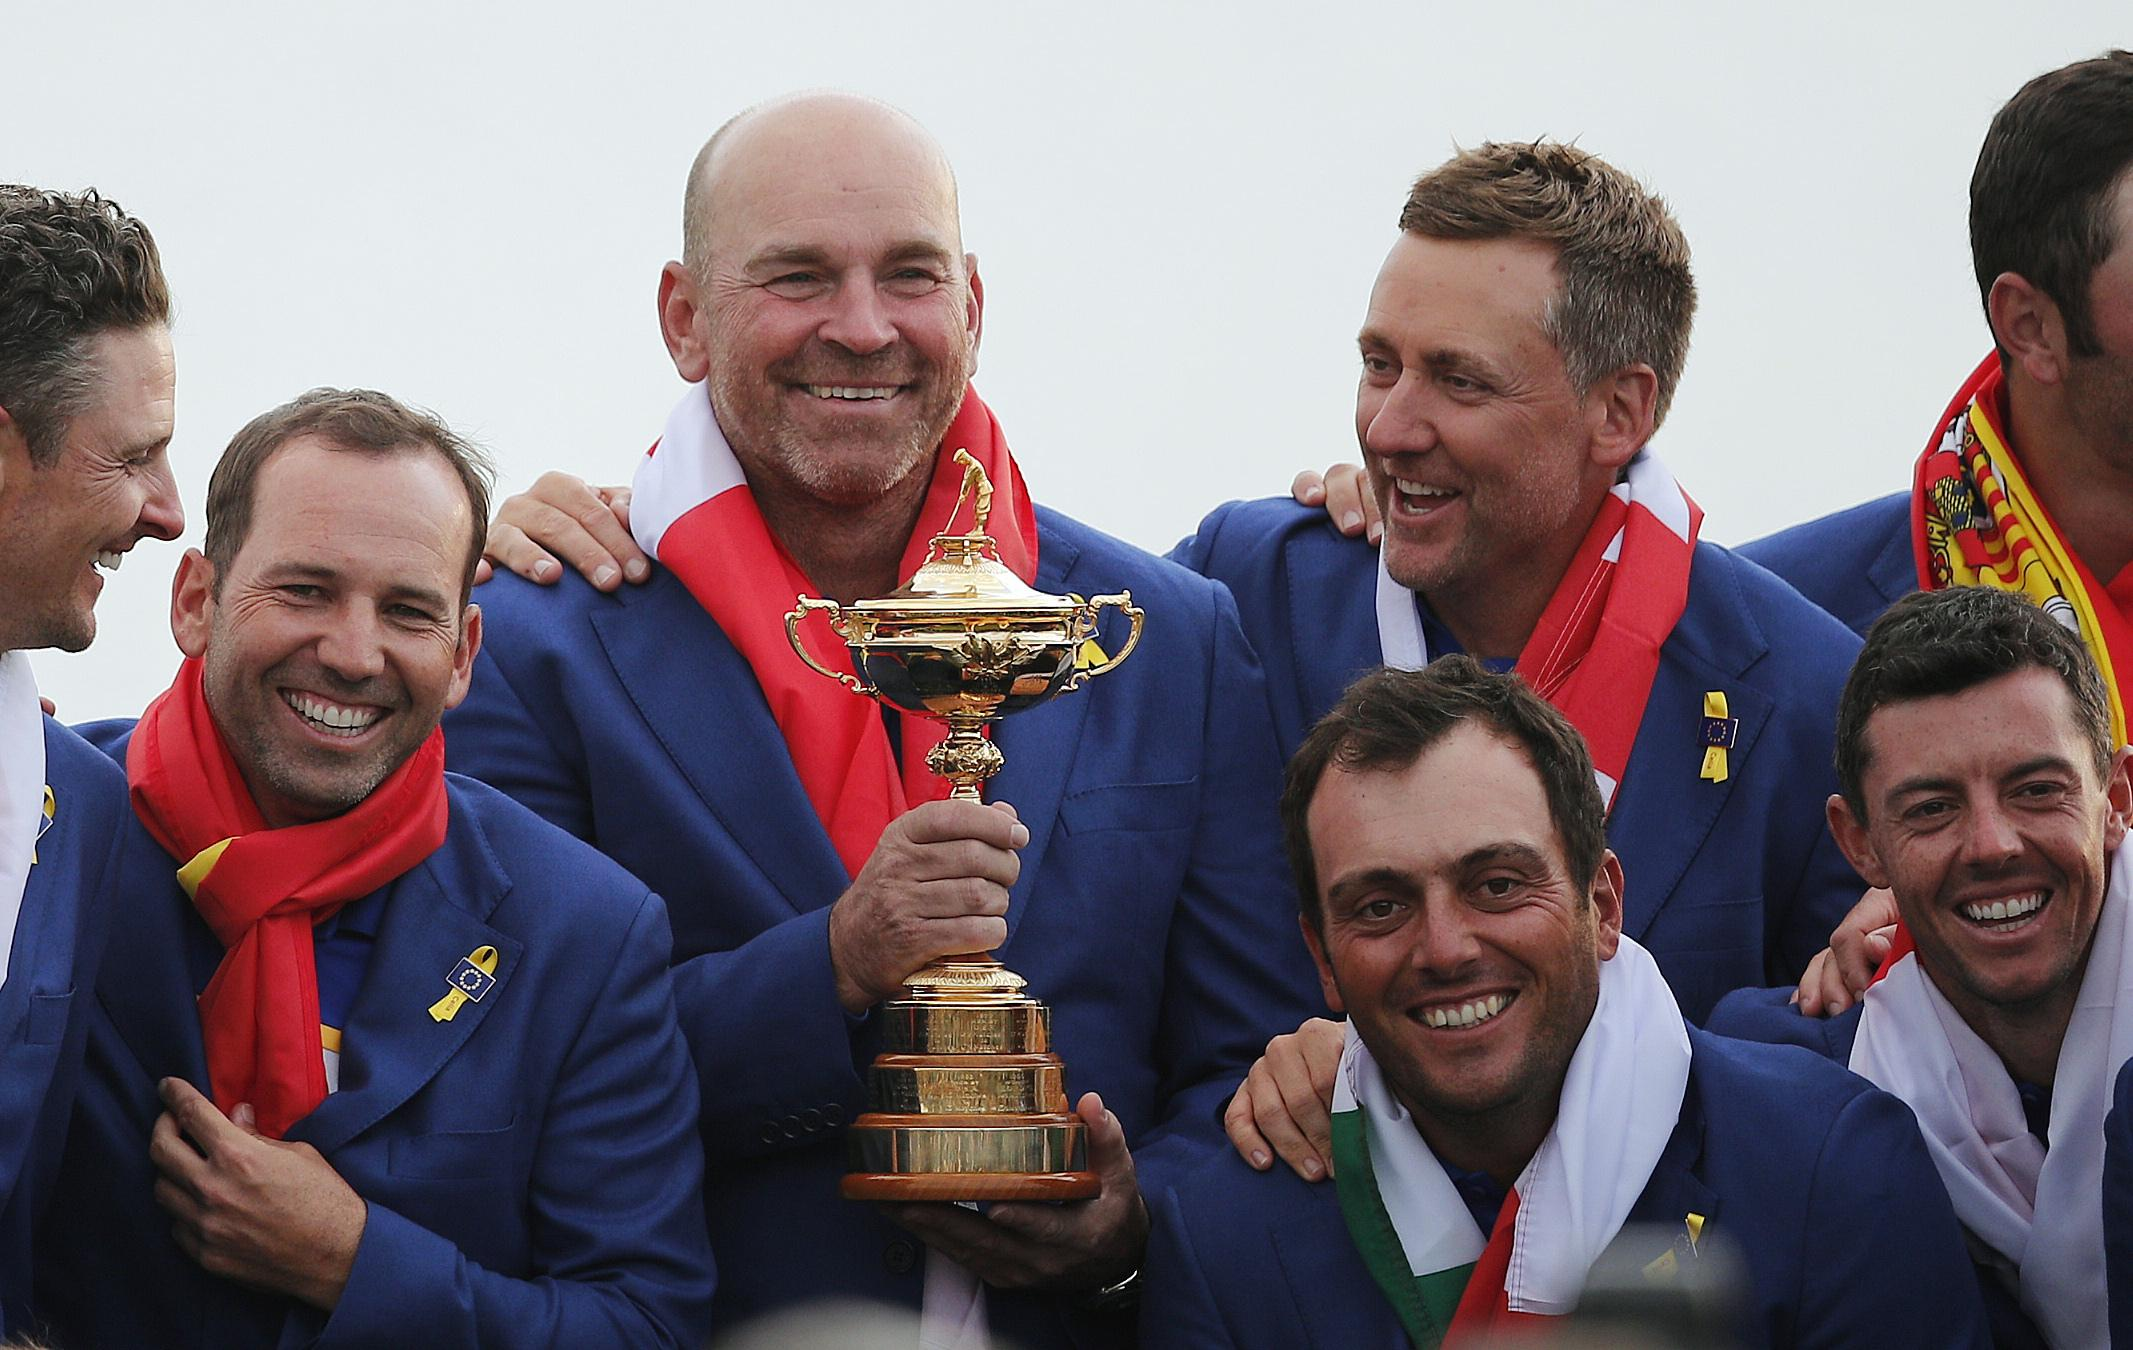 Europe captain Thomas Bjorn grins from ear to ear after clinching Ryder Cup victory